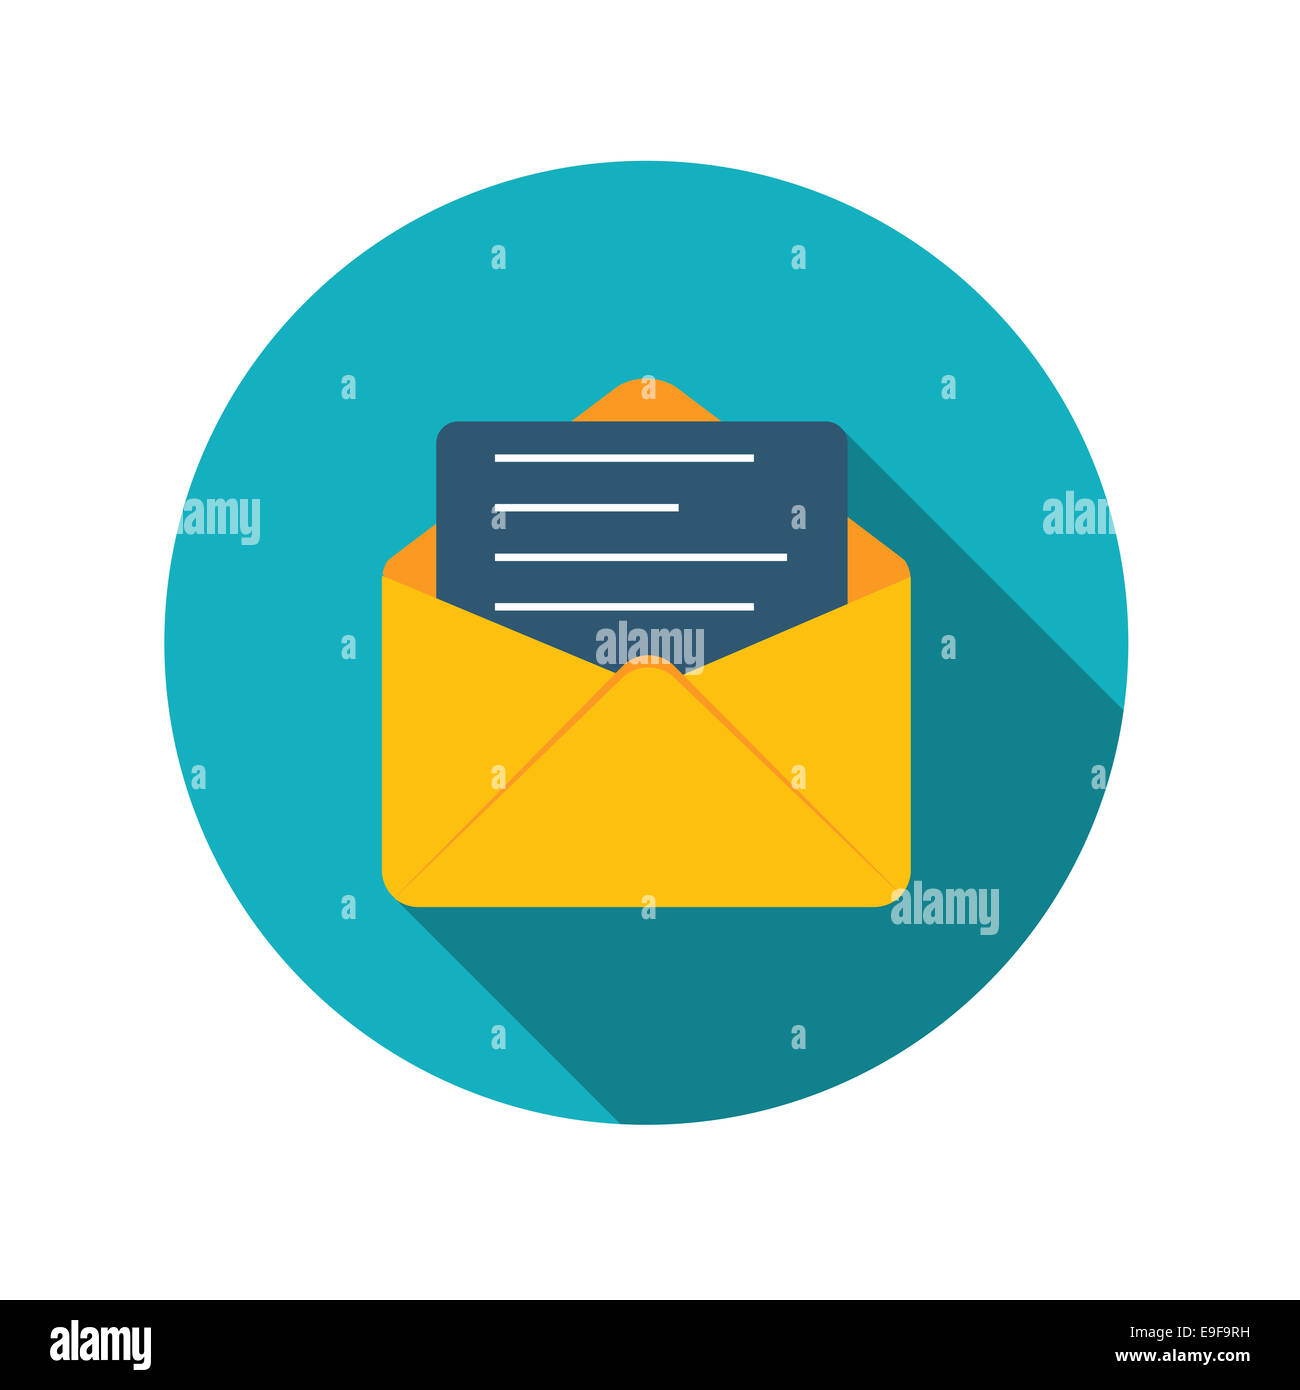 Flat Design Concept Email Send Icon Vector Illustration With Lon - Stock Image